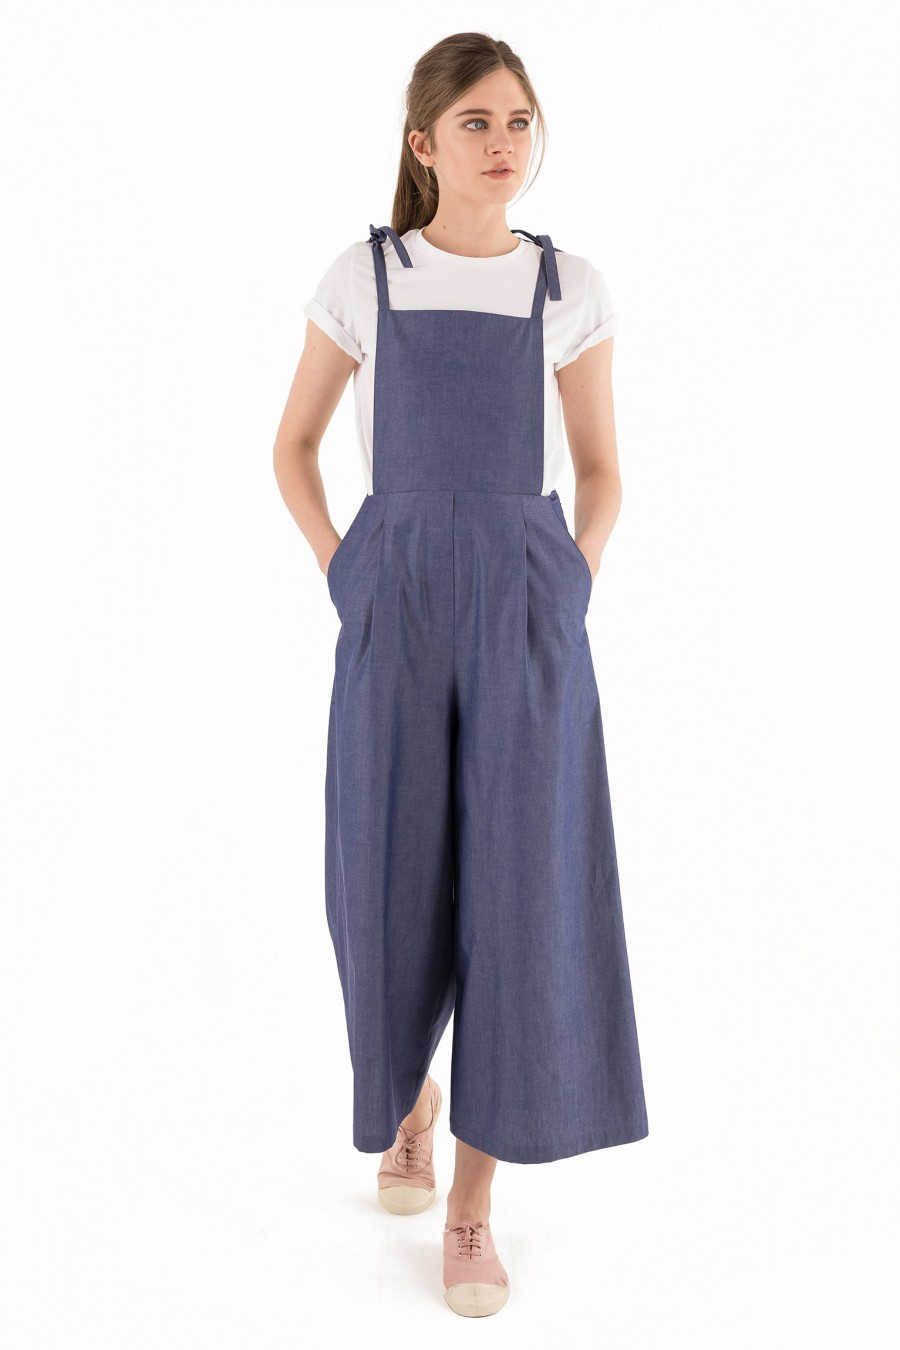 Light denim overalls with palazzo pants